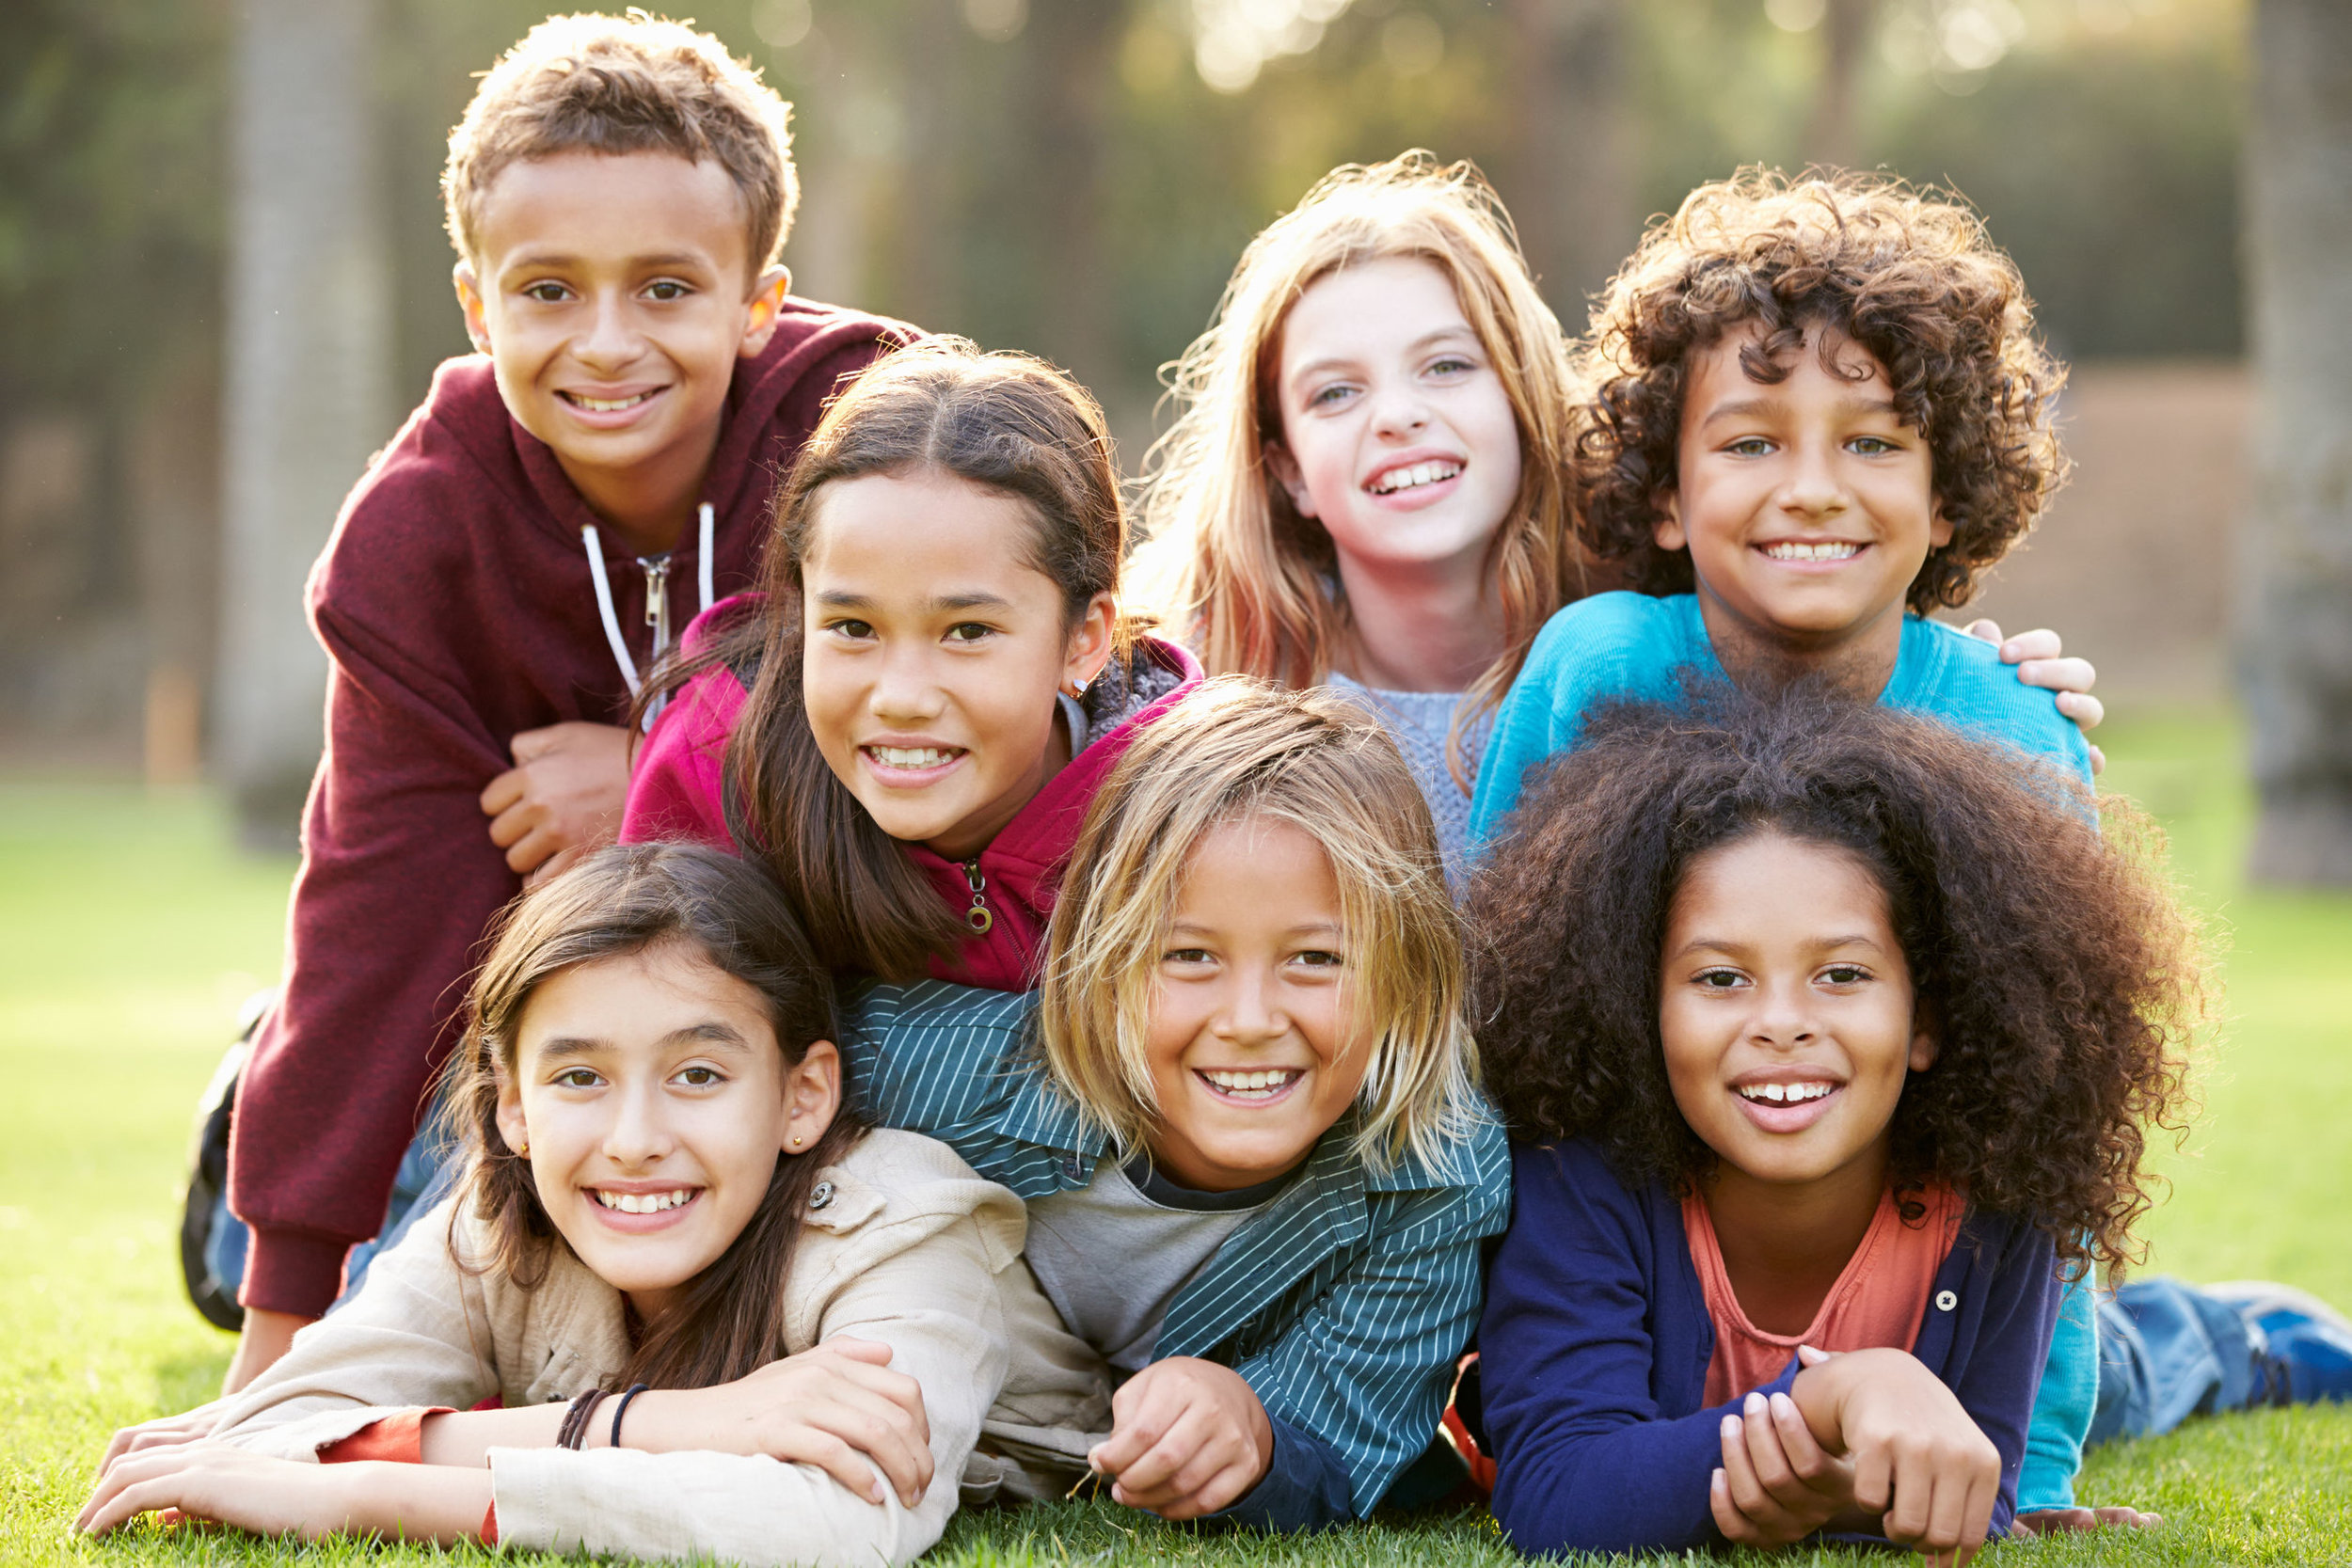 Taking care of teeth at a young age provides a smile to last many years.